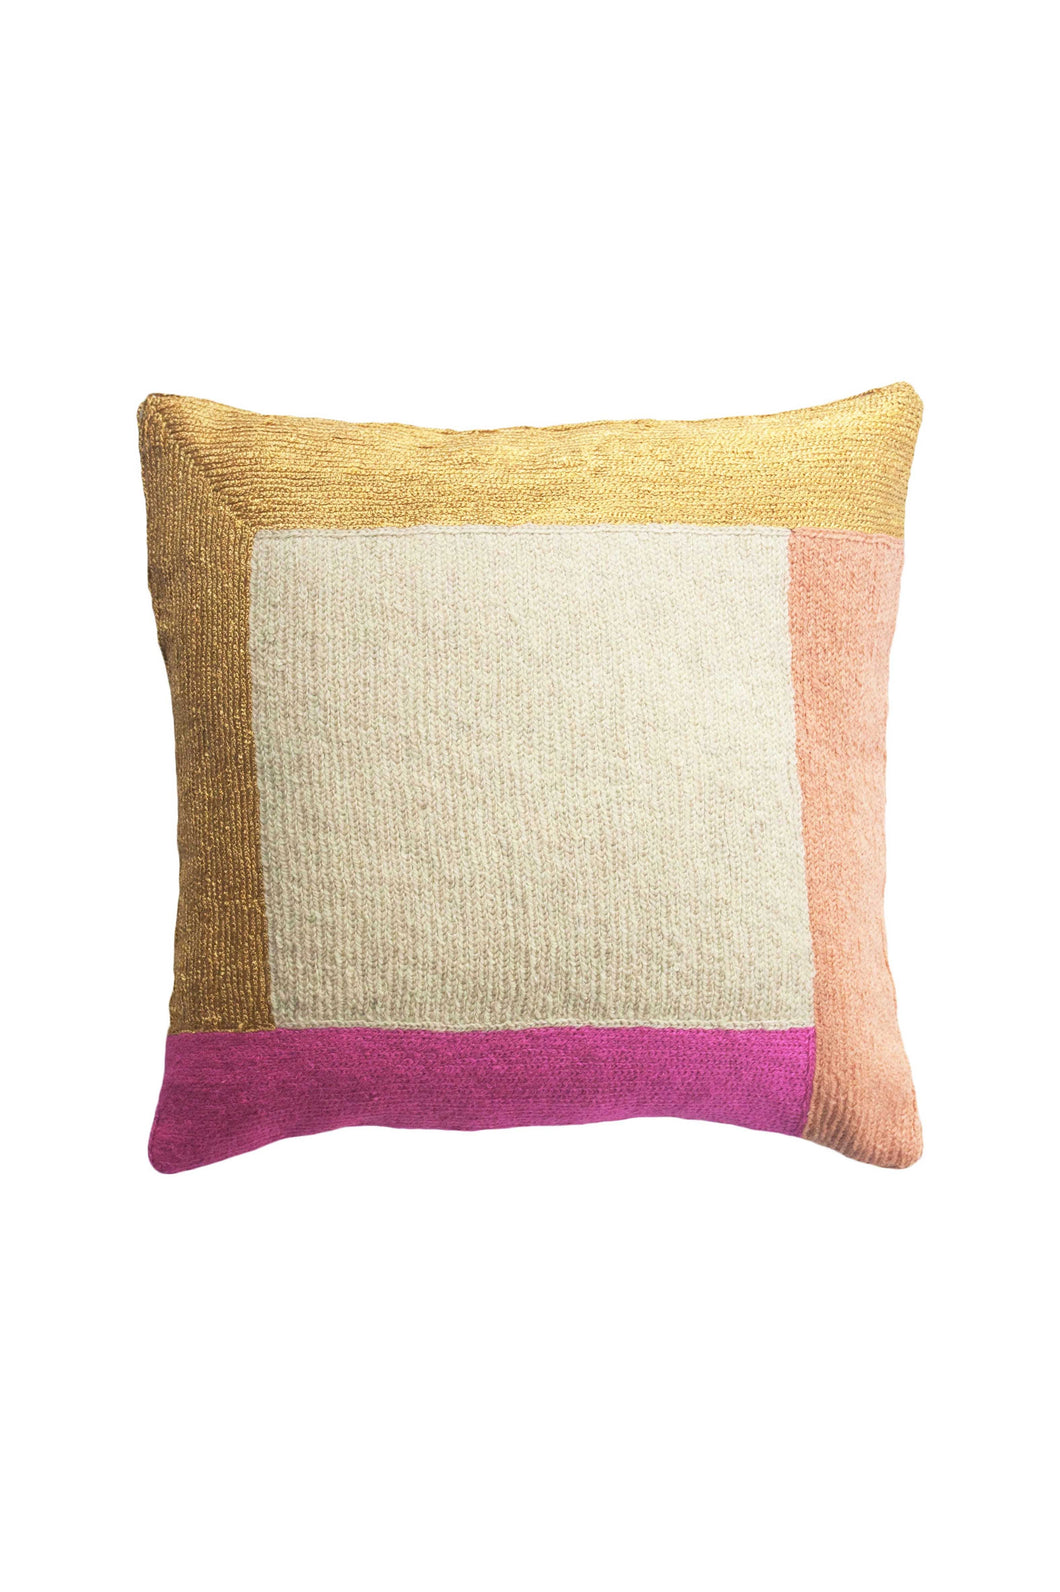 Nia Square Pillow